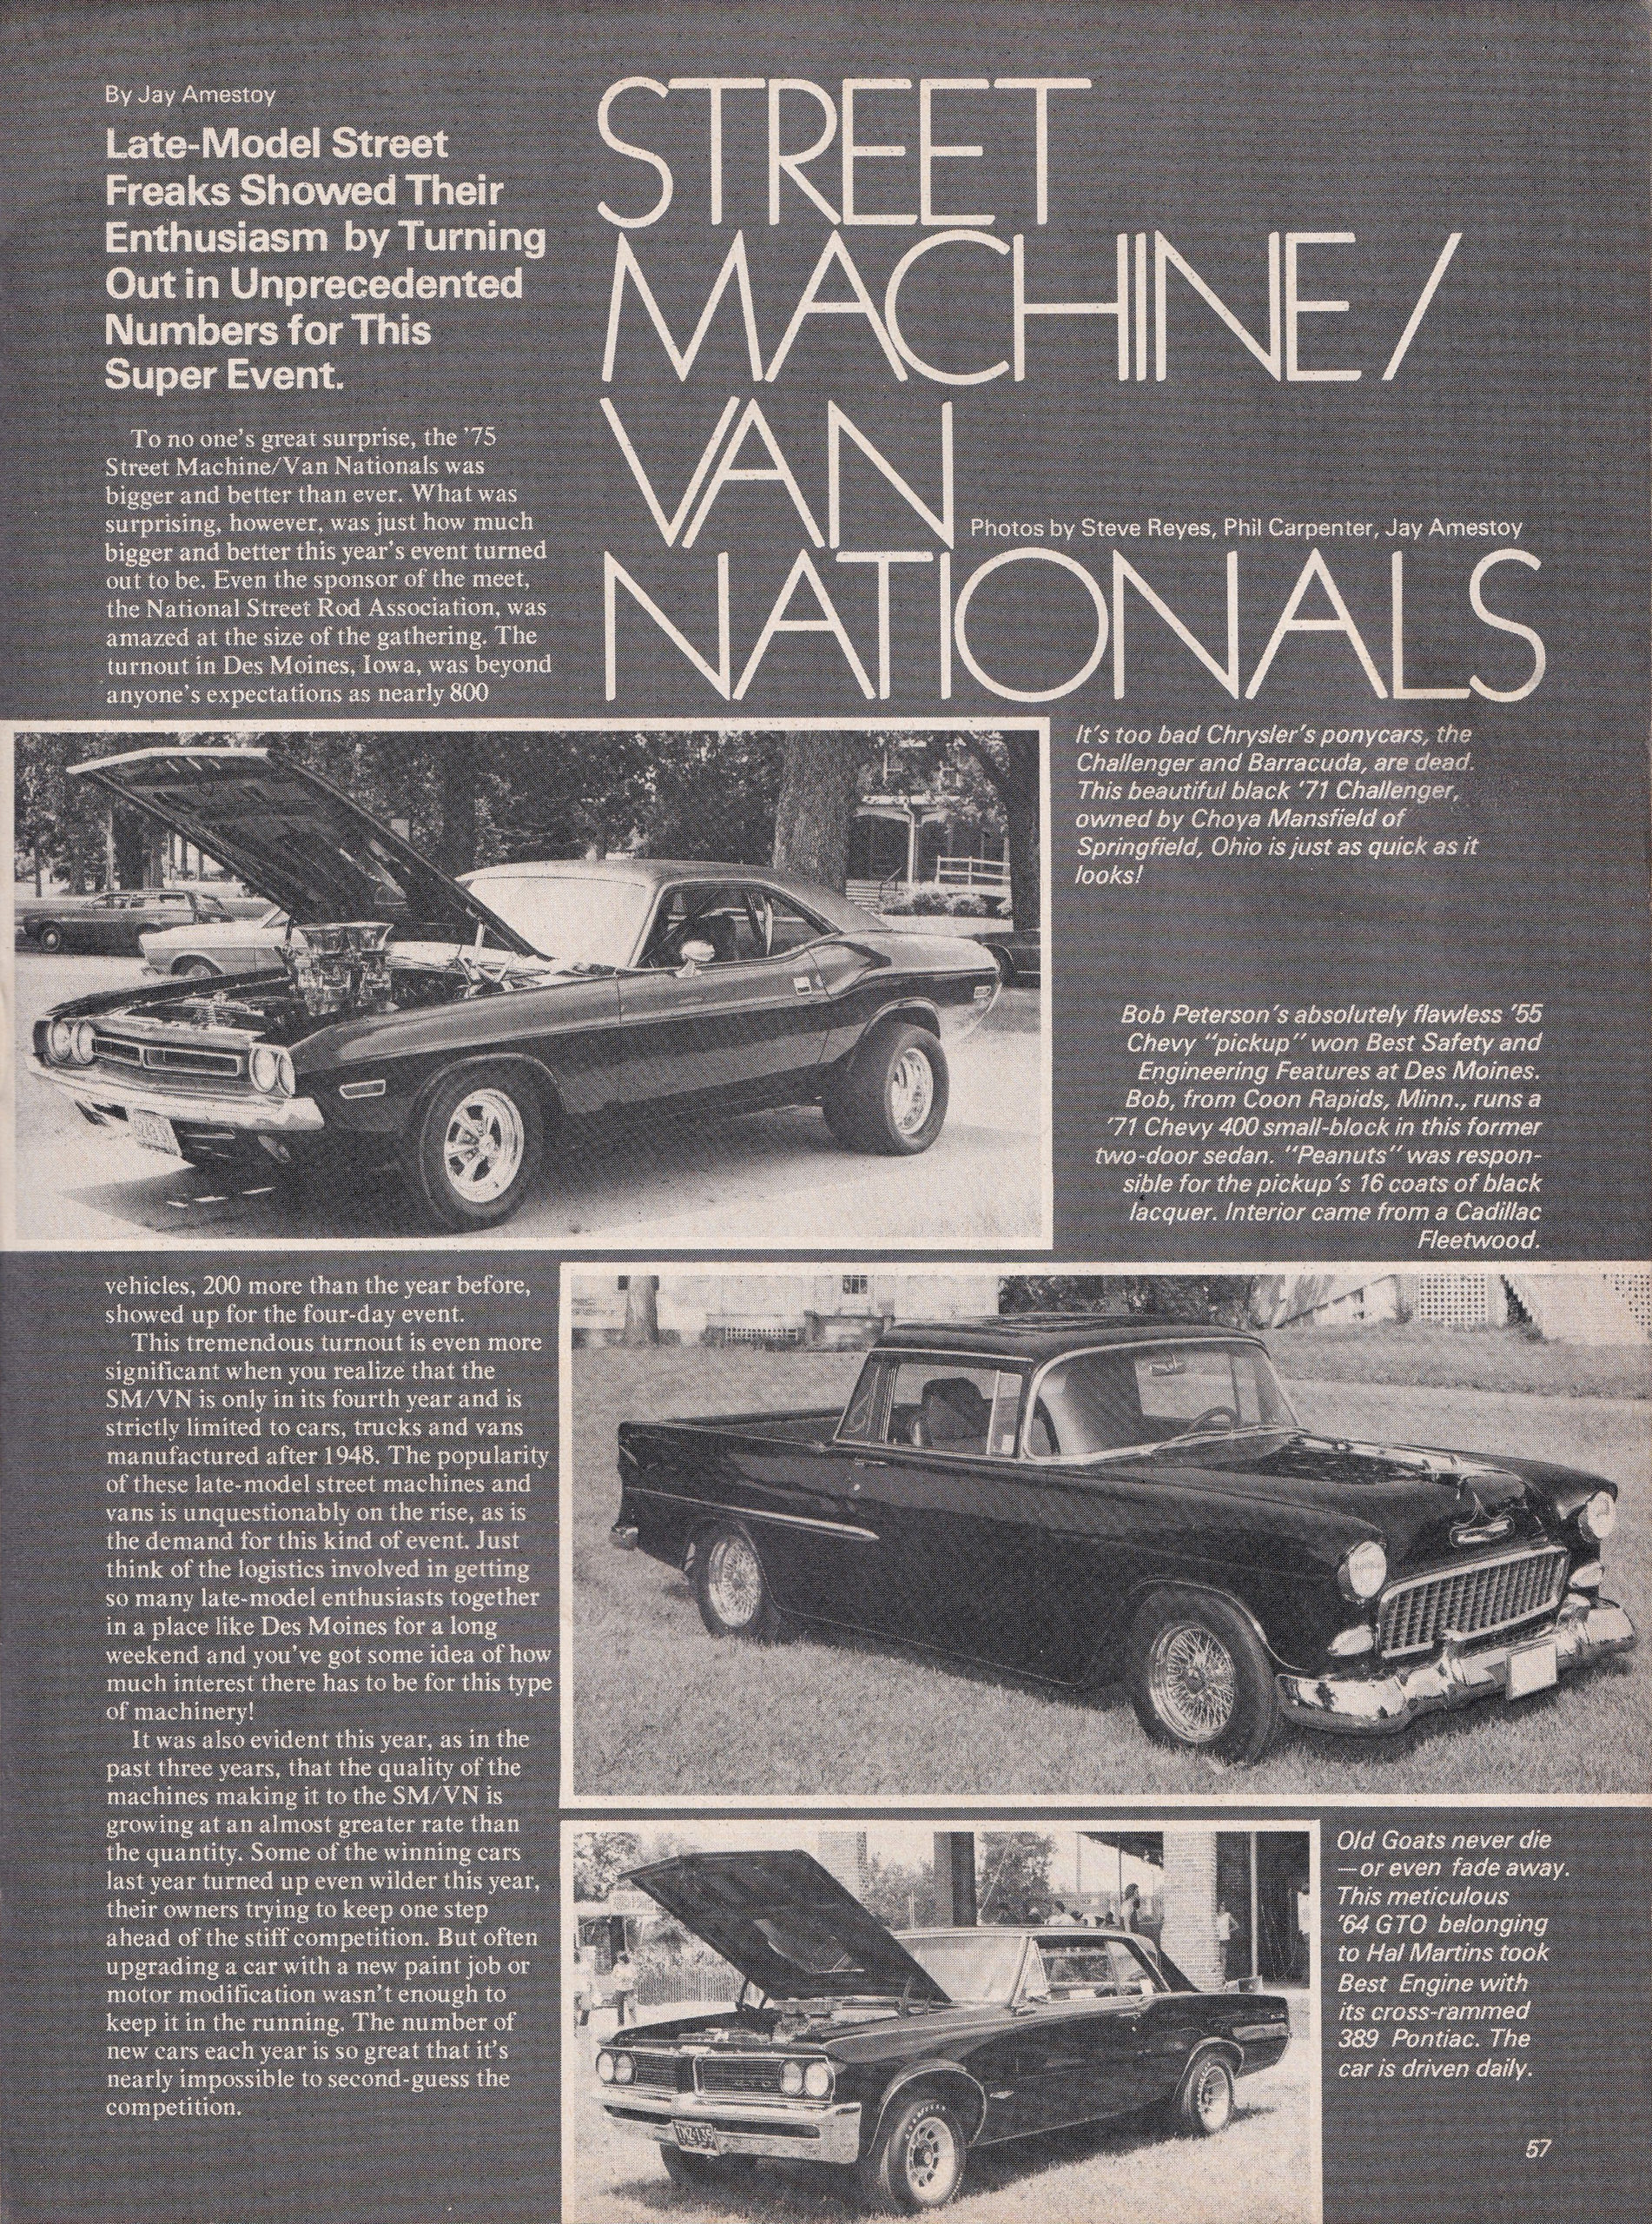 Street Machine / Van Nationals section from October 1975 issue of Popular Hot Rodding, page 2.